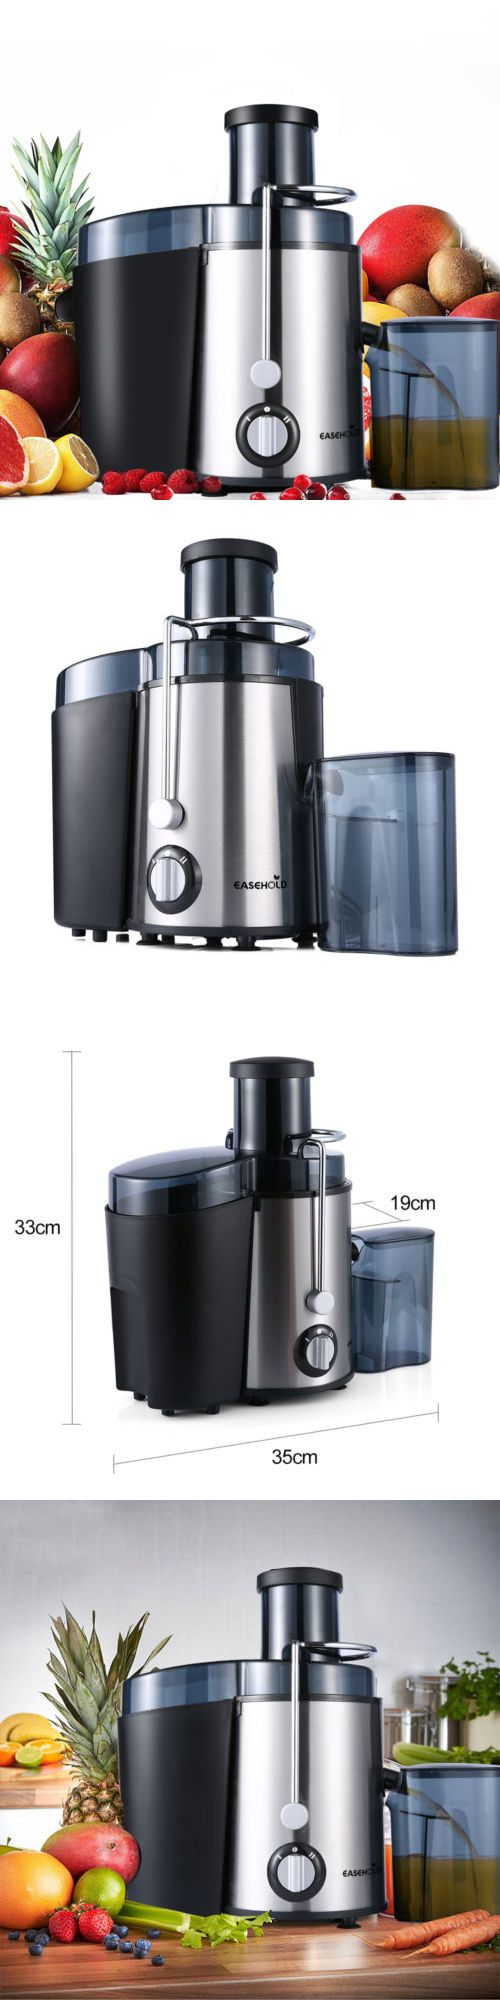 Kitchen small appliance circuit - Small Kitchen Appliances Usa Stock Electric Fruit Vegetable Juicer Extractor Juice Maker Machine 2 Speeds